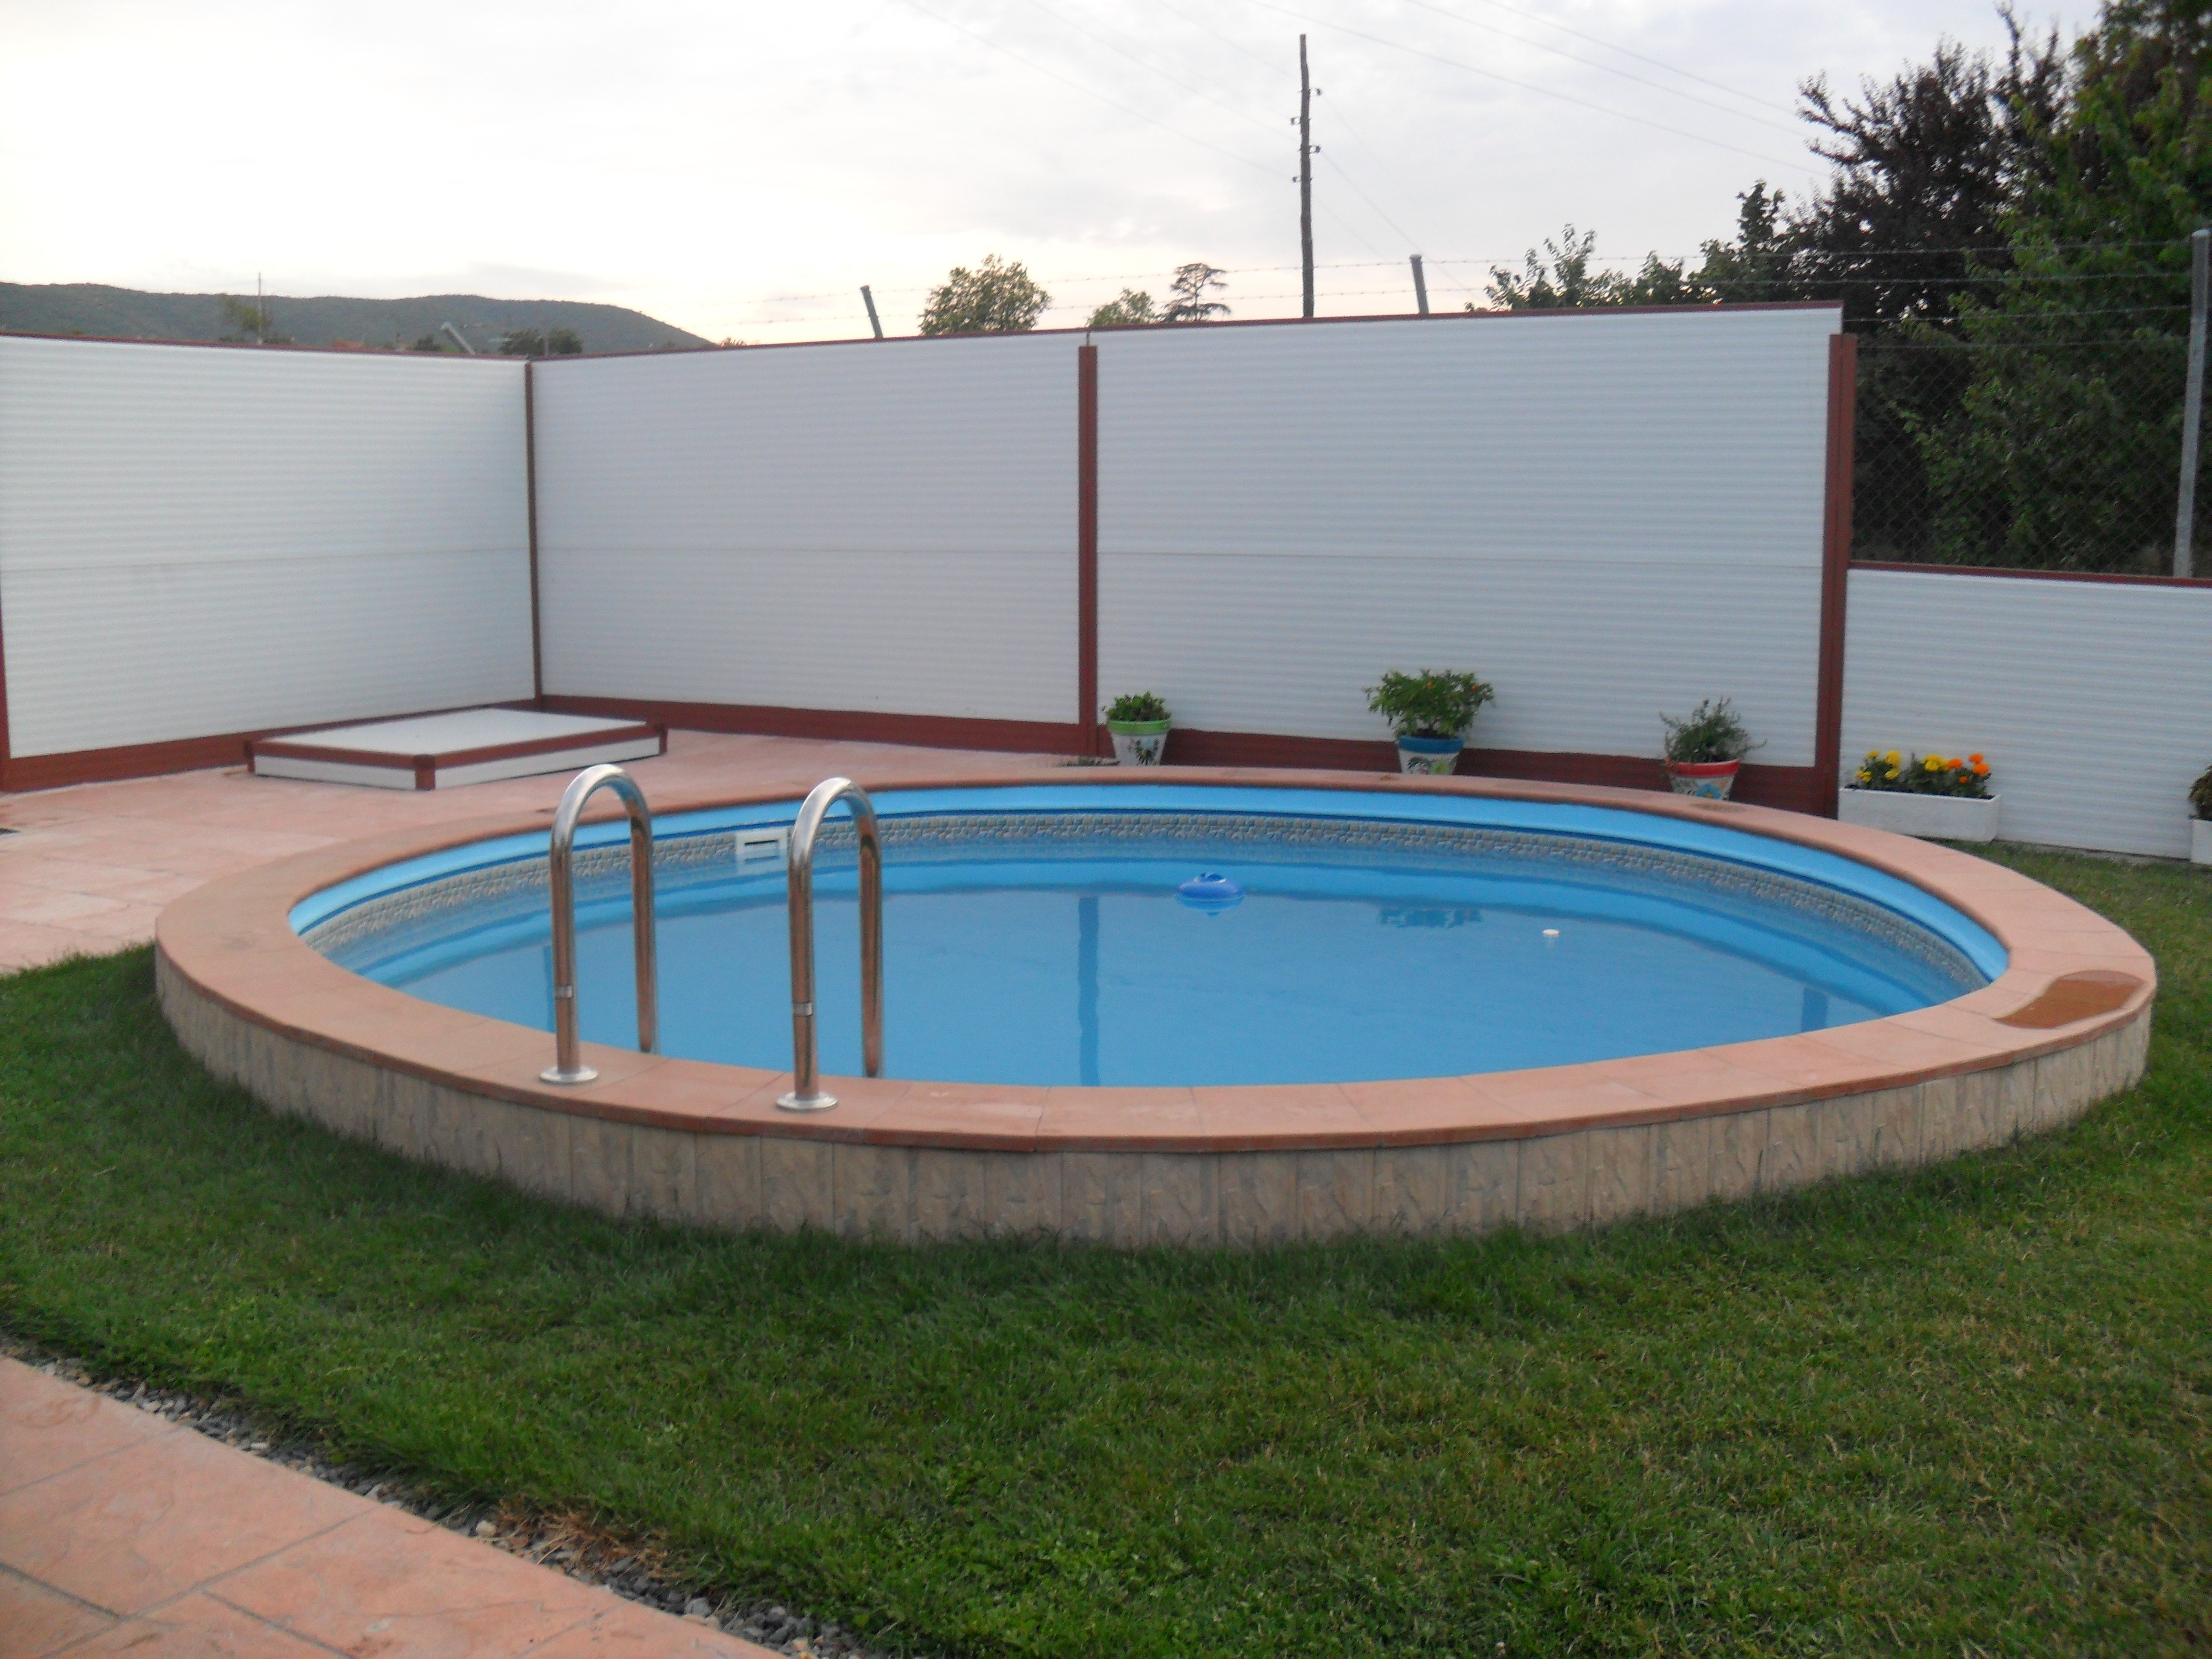 Piscinas desmontables colombia for Recambios piscinas desmontables